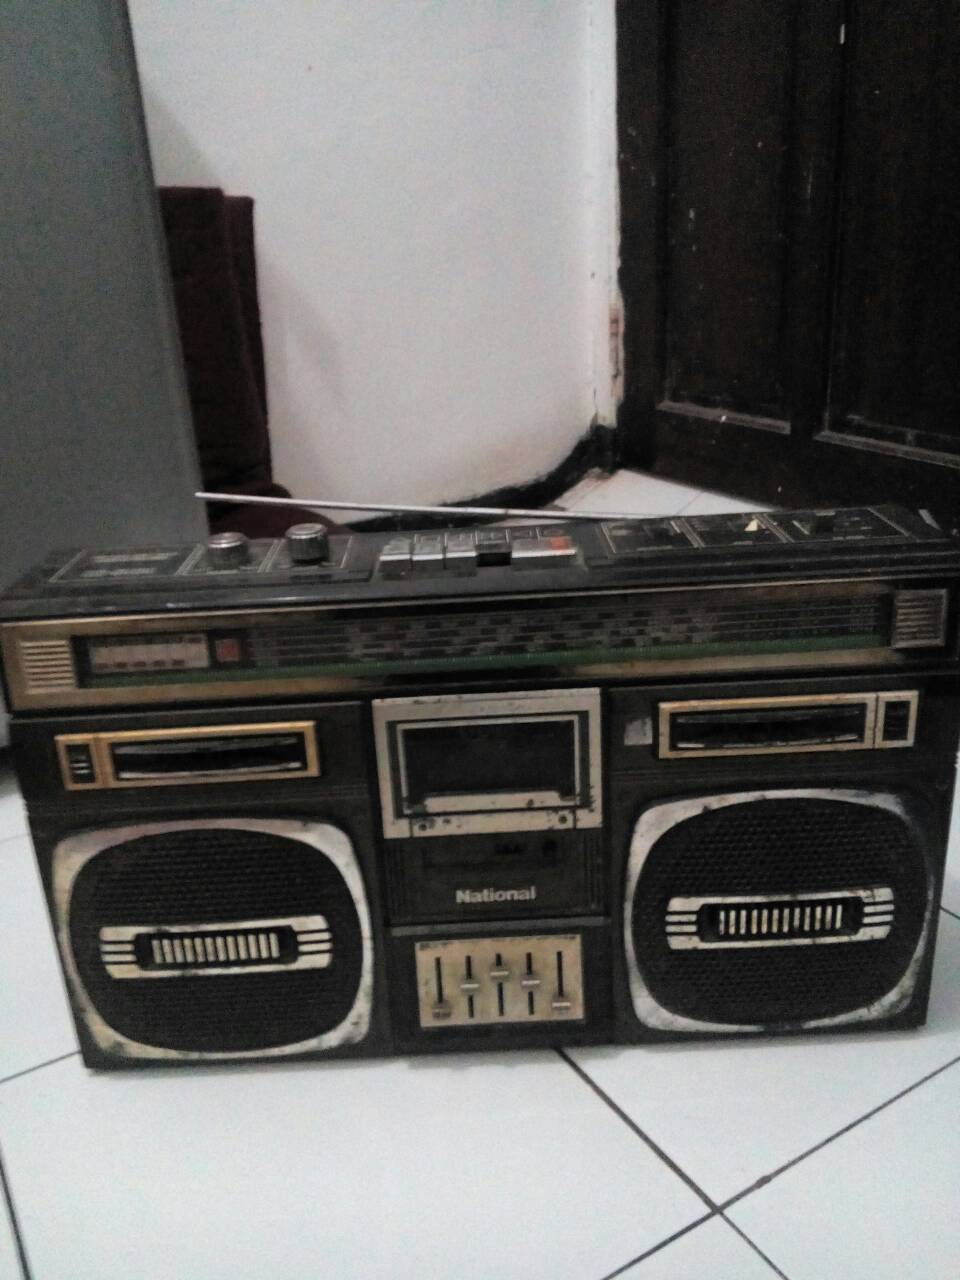 Jual Radio Jadul Klasik Antik Khoiriyah Collection Tokopedia